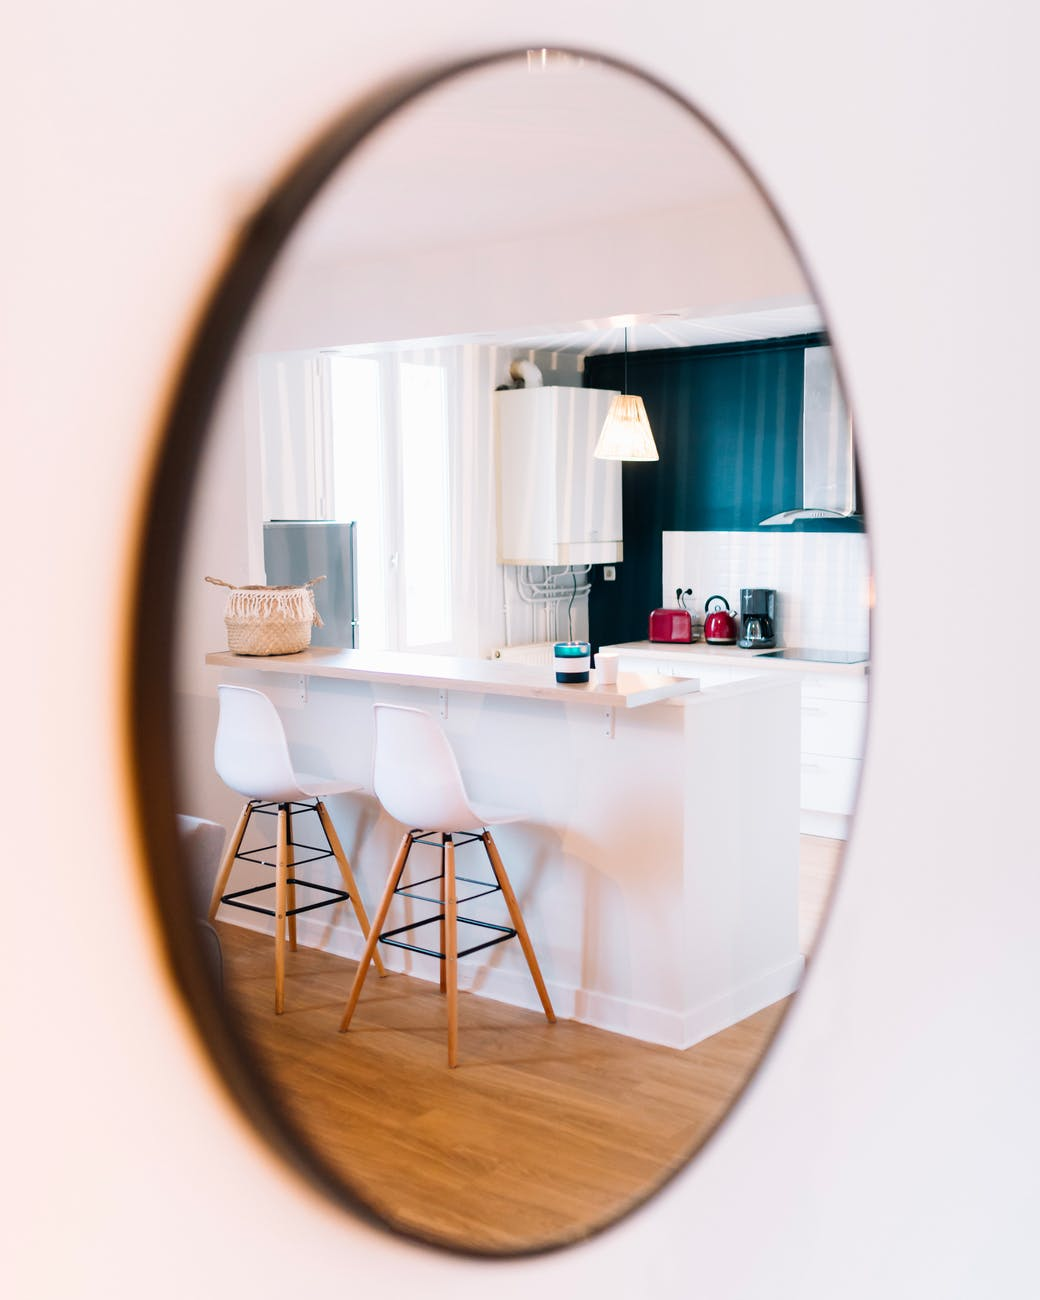 white wooden table and chairs seen from oval mirror